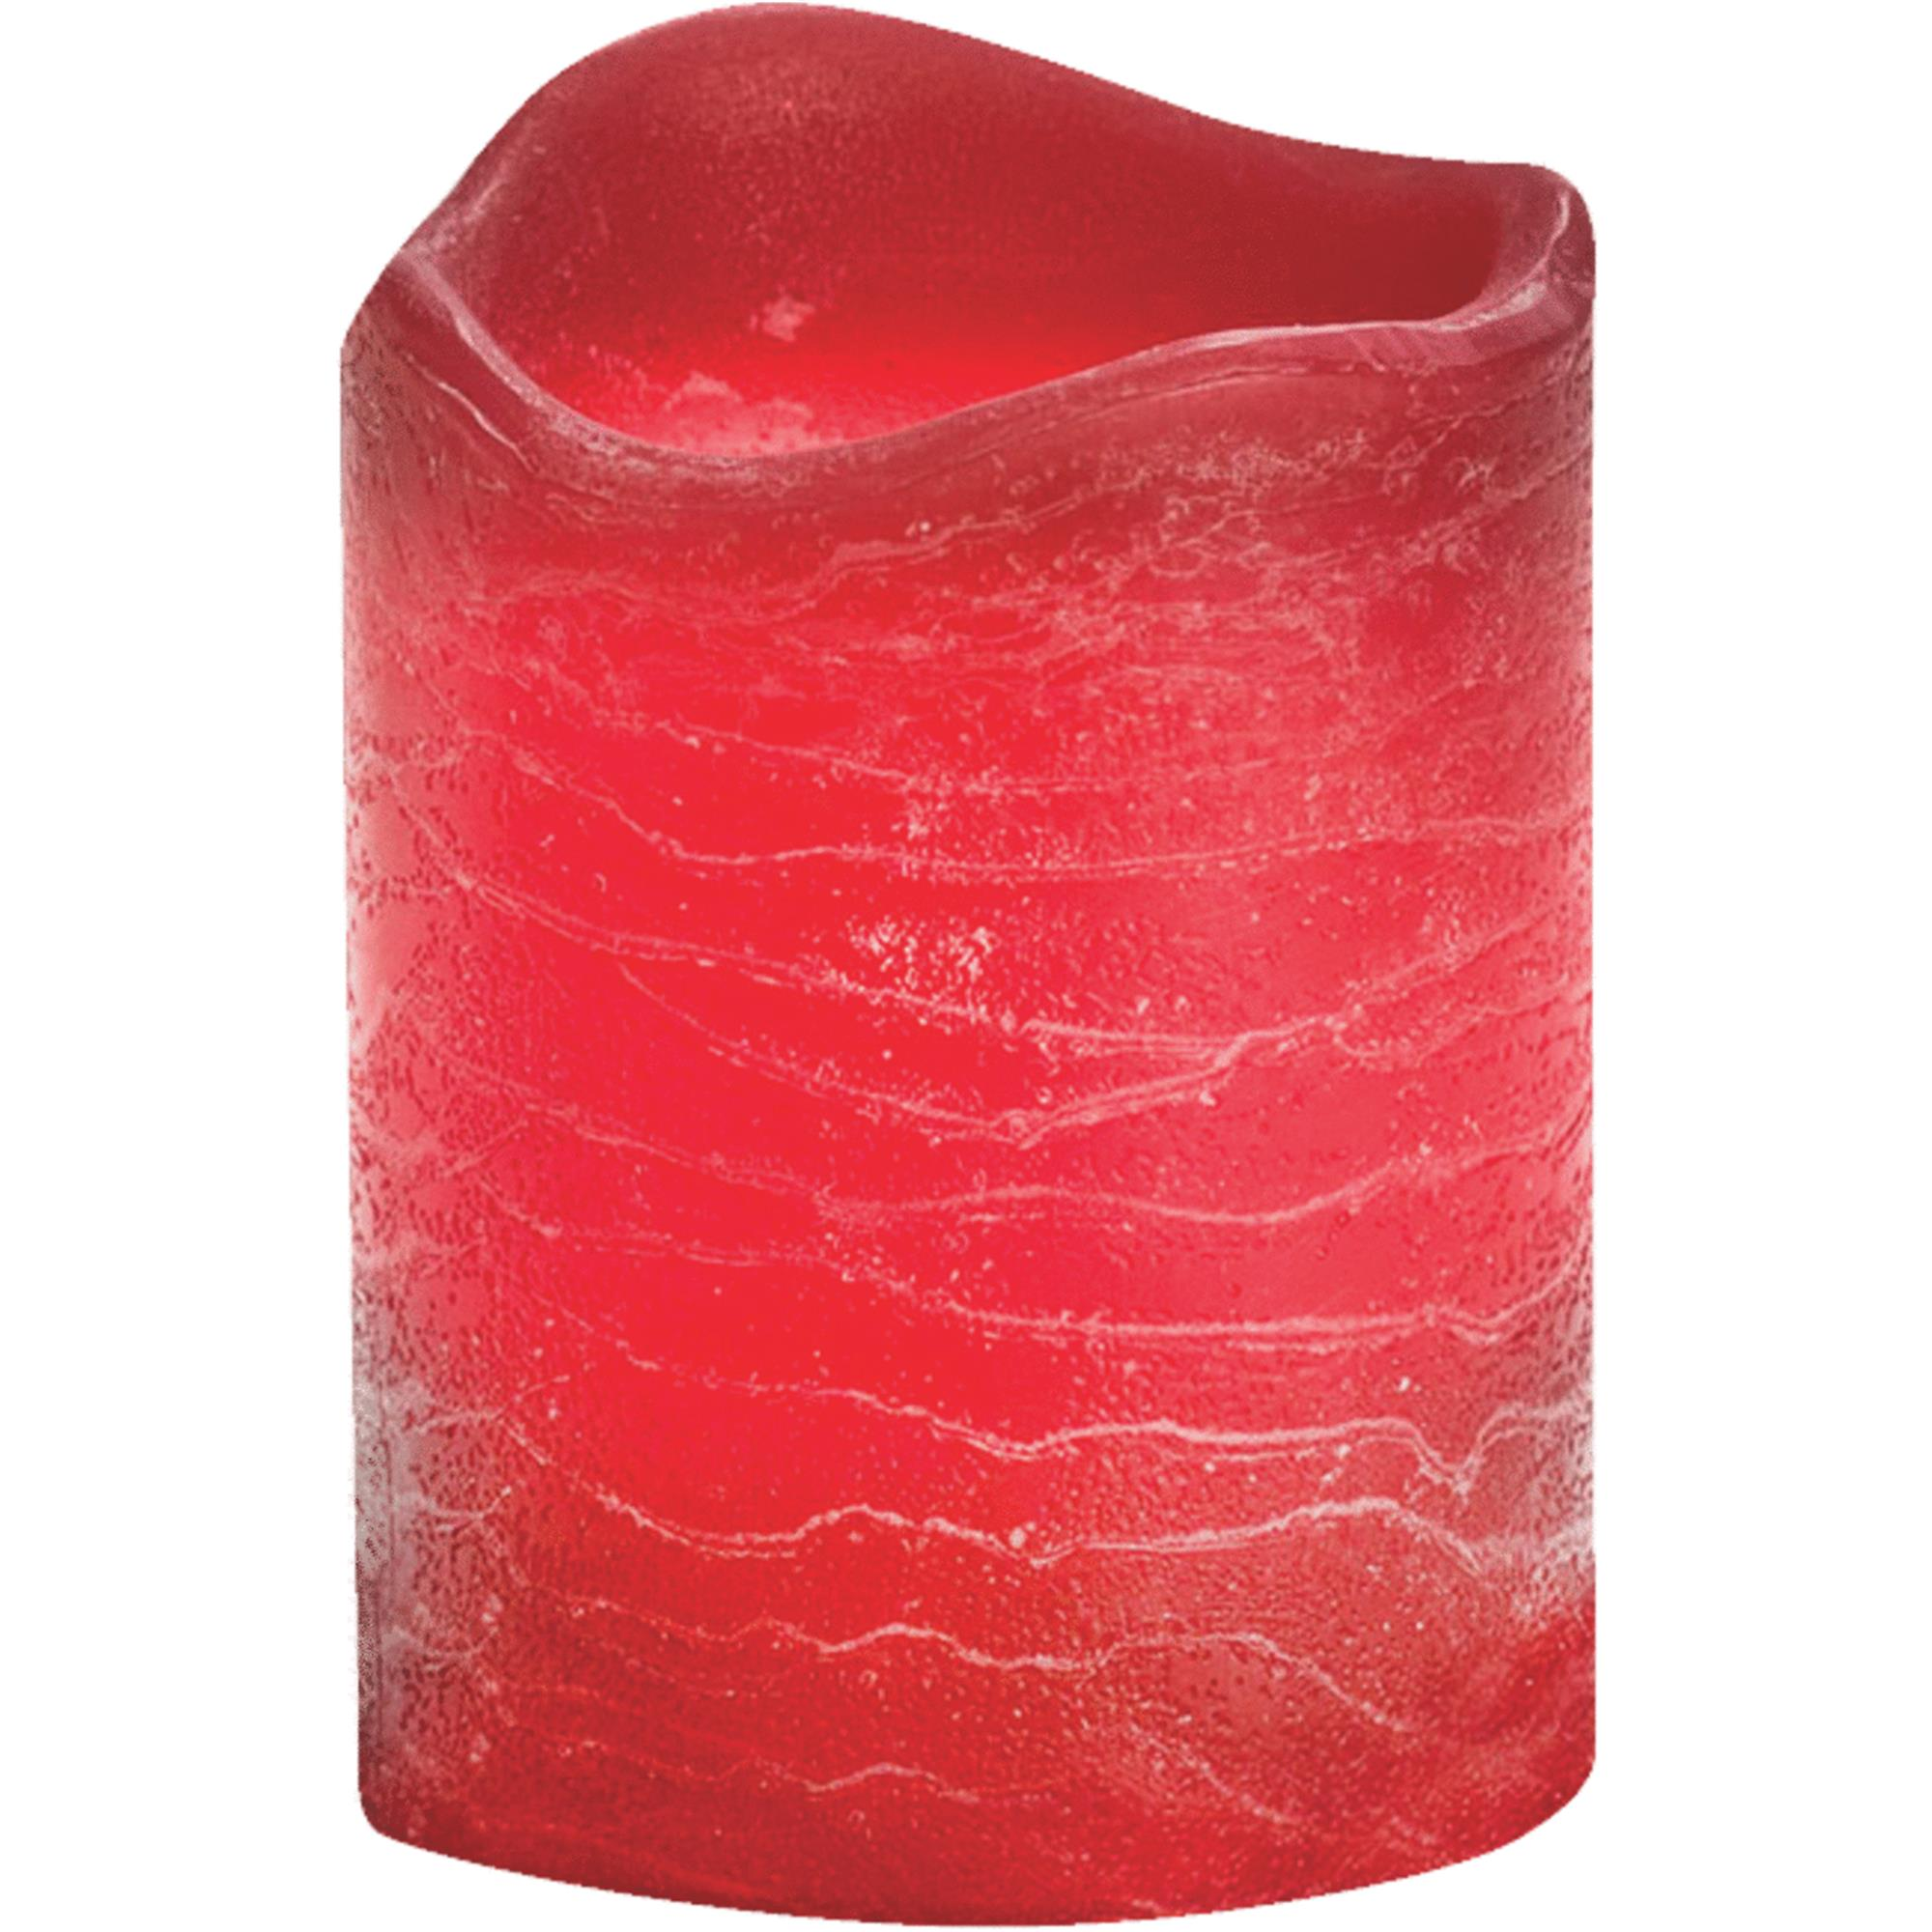 Inglow Flameless Rustic Pillar Candles, Pomegranate, Set of 6